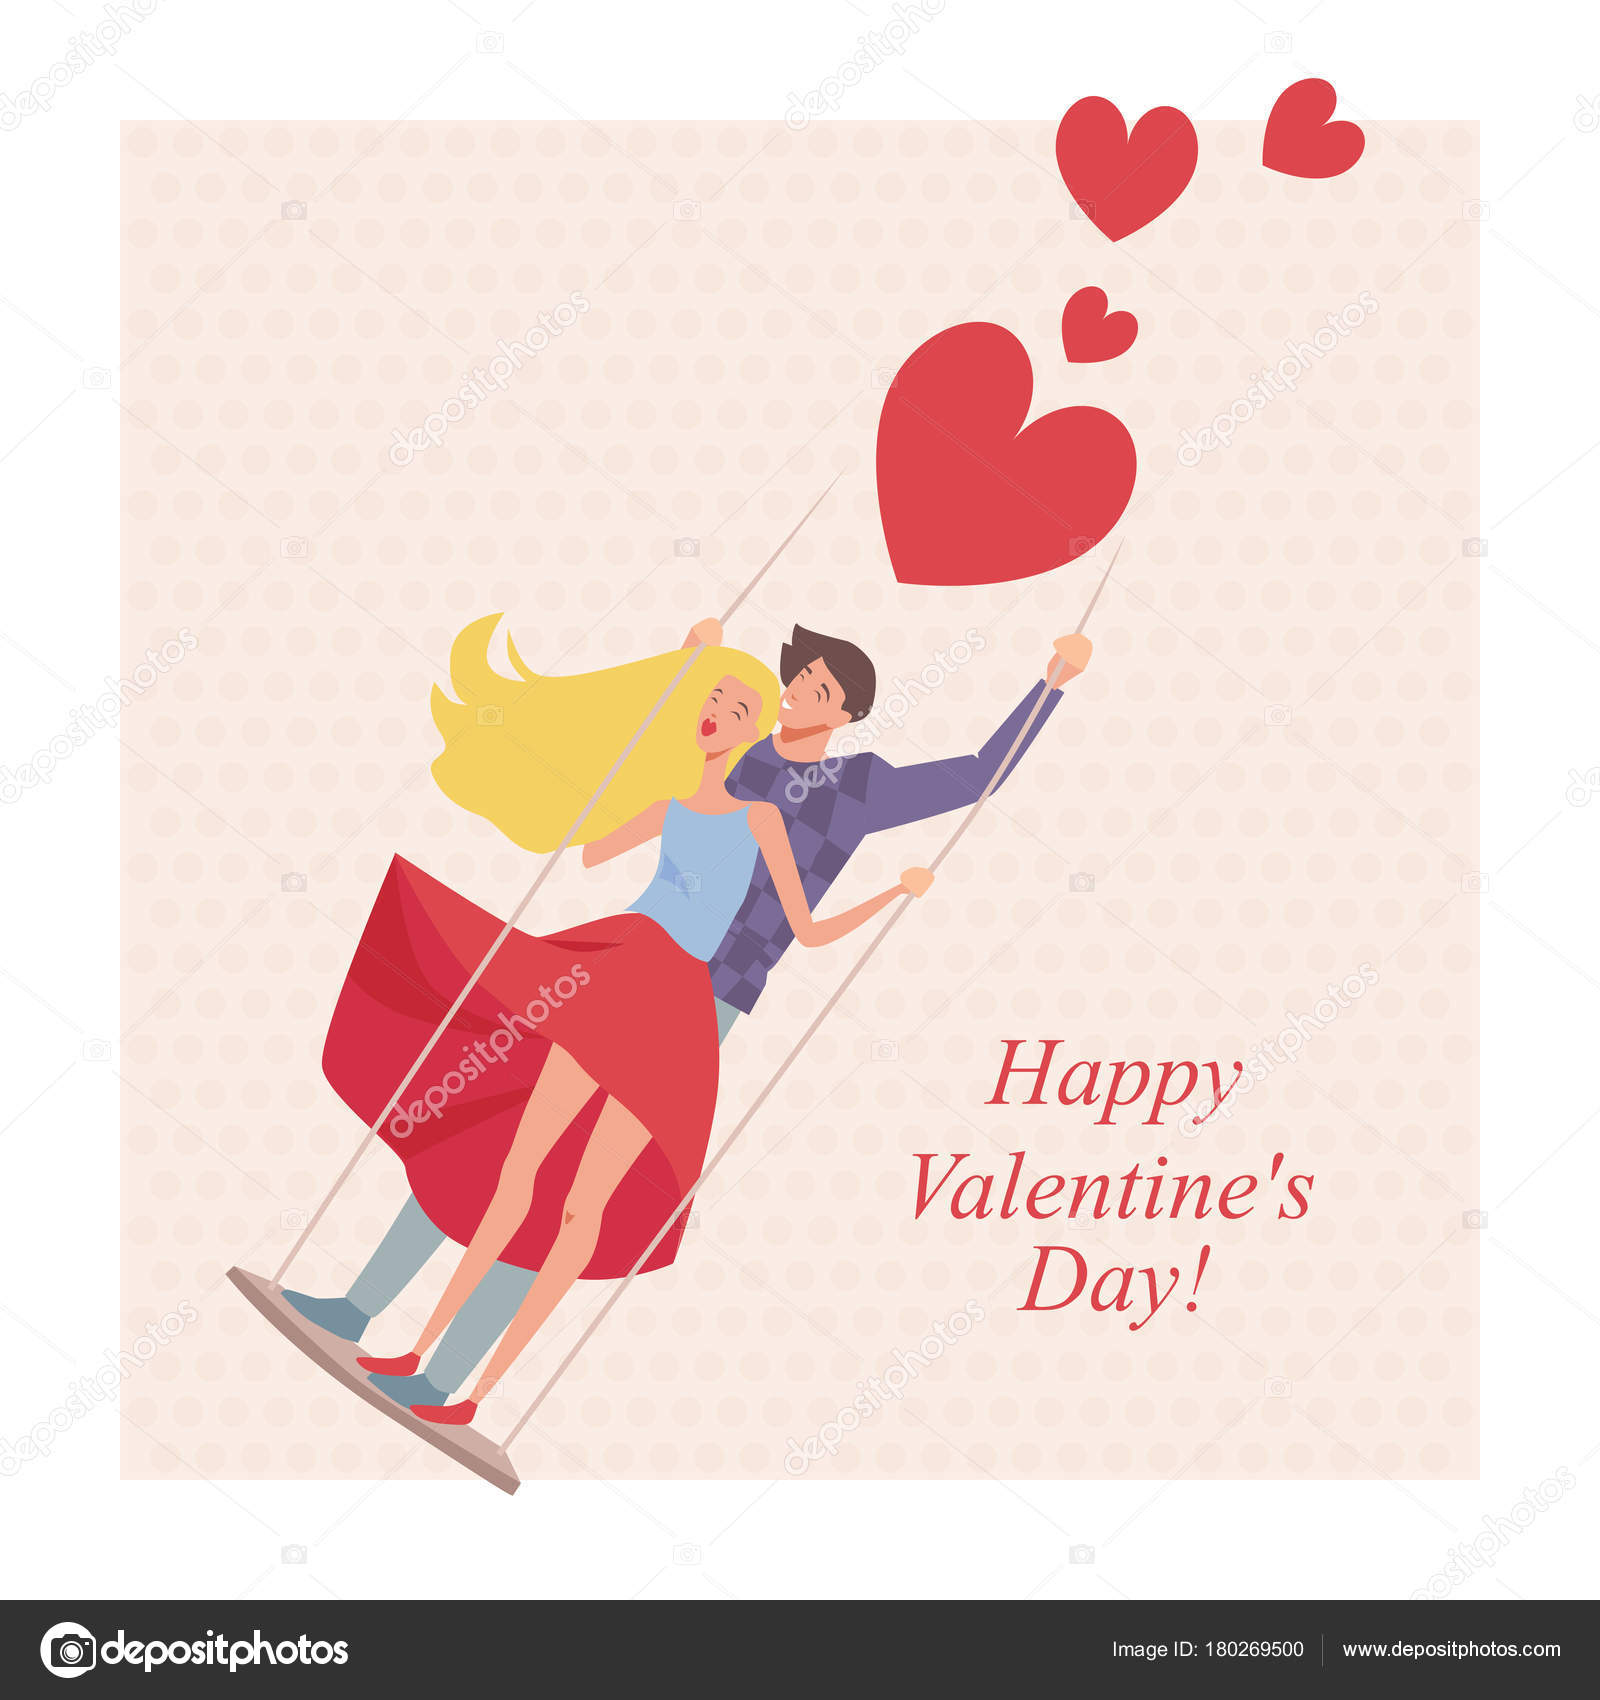 Greeting card valentine day cartoon style lovers swing stock greeting card valentine day cartoon style lovers swing stock vector kristyandbryce Choice Image